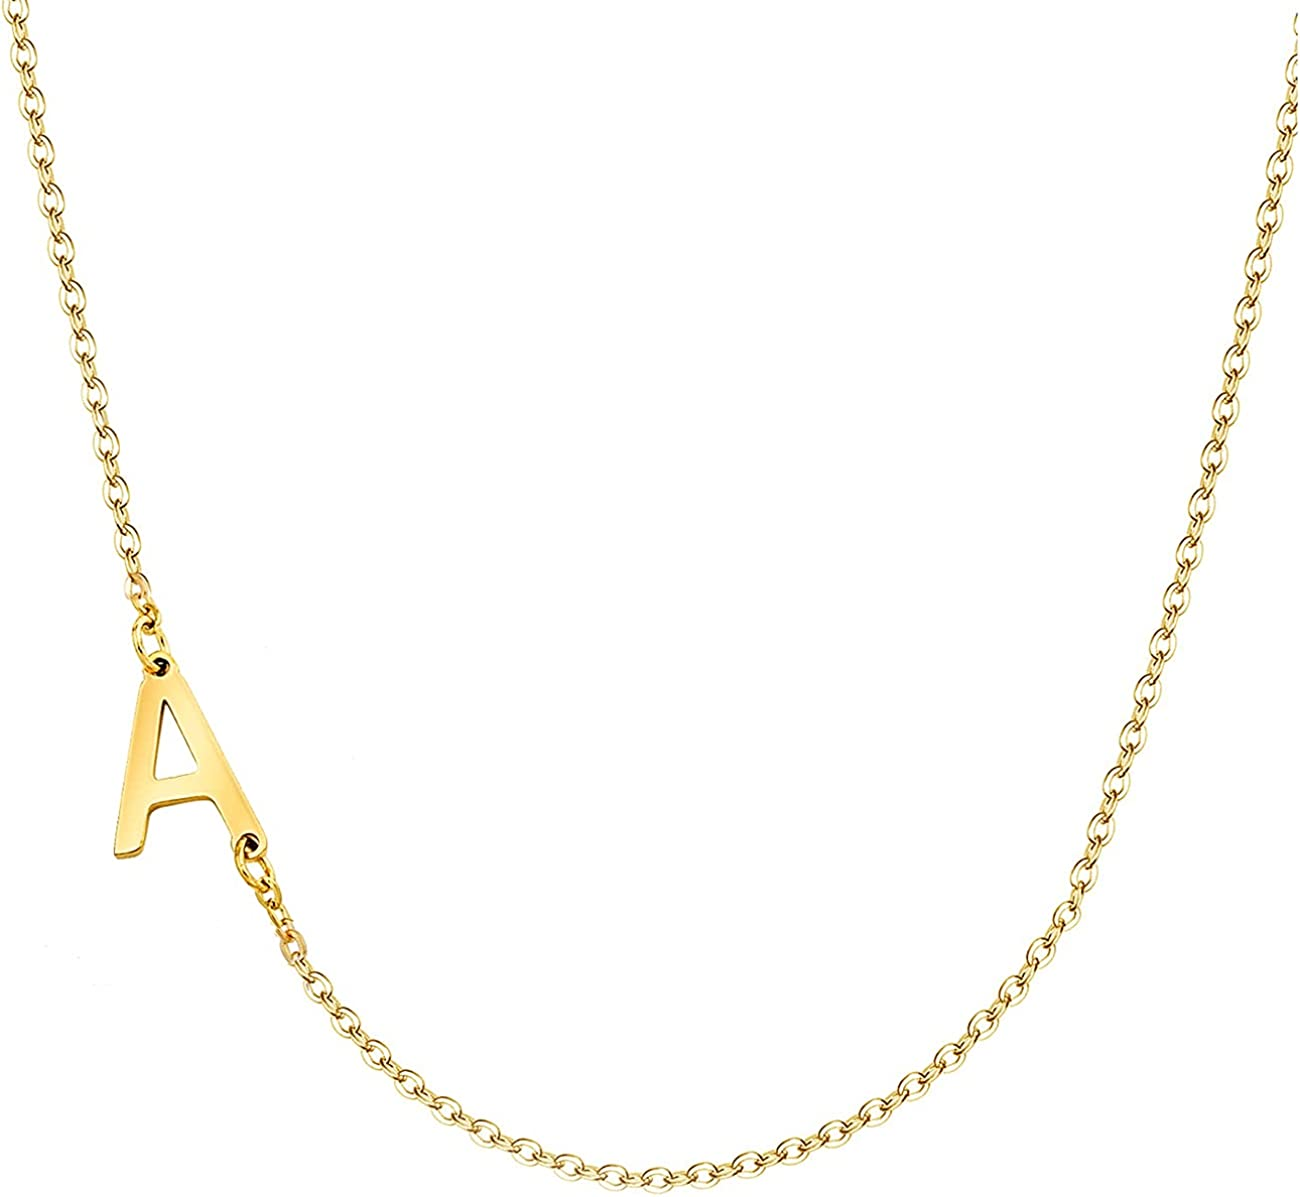 Ovian Sideways Initial Choker Necklace for Women 18K Gold Plated Stainless Steel Mini Letter Necklace Personalized Name Necklace for Girls